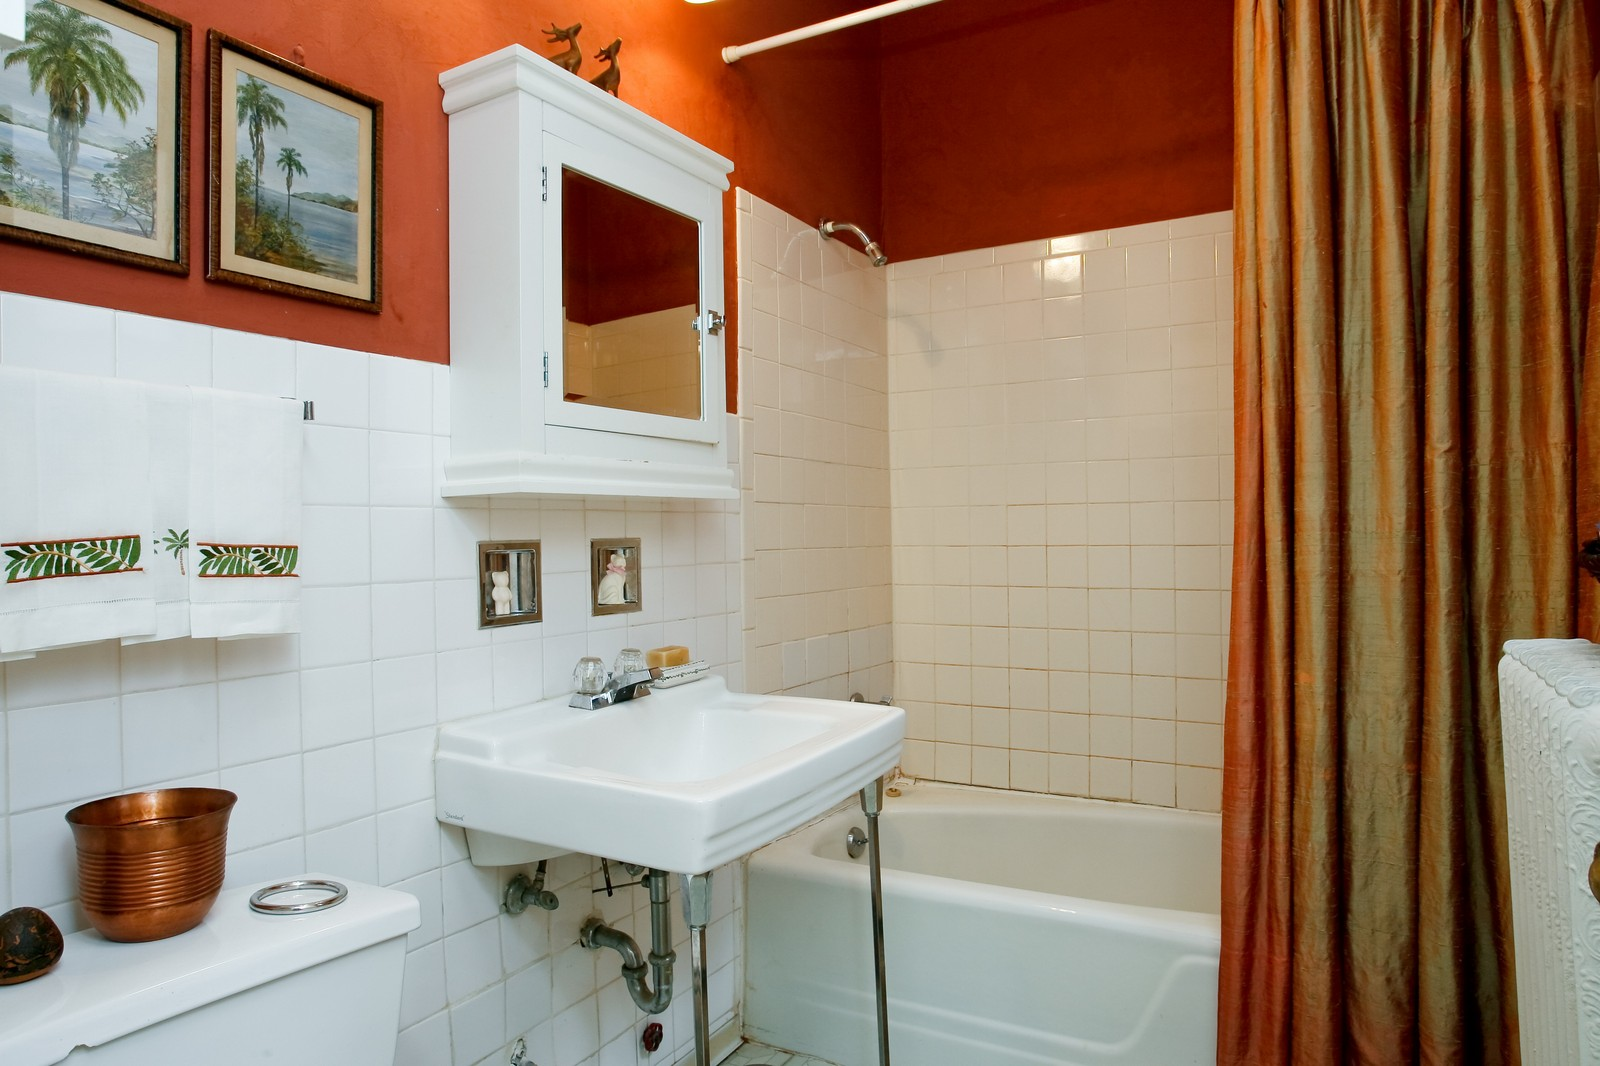 Real Estate Photography - 841 W George, Chicago, IL, 60657 - Bathroom